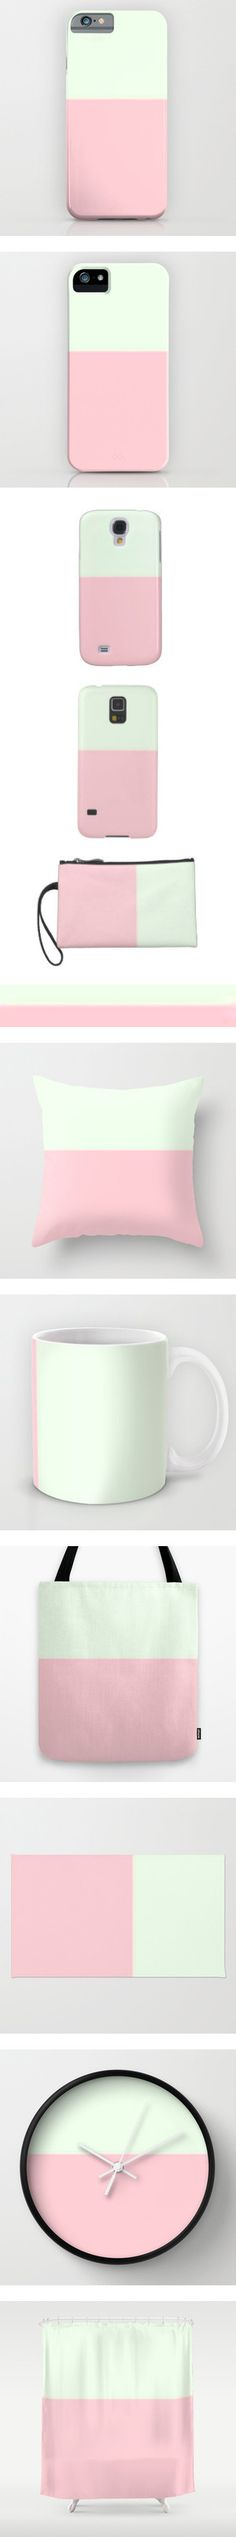 Re-Created Playing Field by Robert S. Lee  i by robertsleeart on Polyvore featuring home, home decor, throw pillows, clocks, bed & bath, bath, shower curtains, bedding, duvet covers and queen bedding#art #graphic #design #iphone #ipod #ipad #galaxy #s4 #s5 #s6 #case #cover #skin #colors #mug #bag #pillow #stationery #apple #mac #laptop #sweat #shirt #tank #top #hoody #kids #children #babies #boys #girls #lines #light #home #office #style #fashion #accessory #for #her #him #gift #want #need…